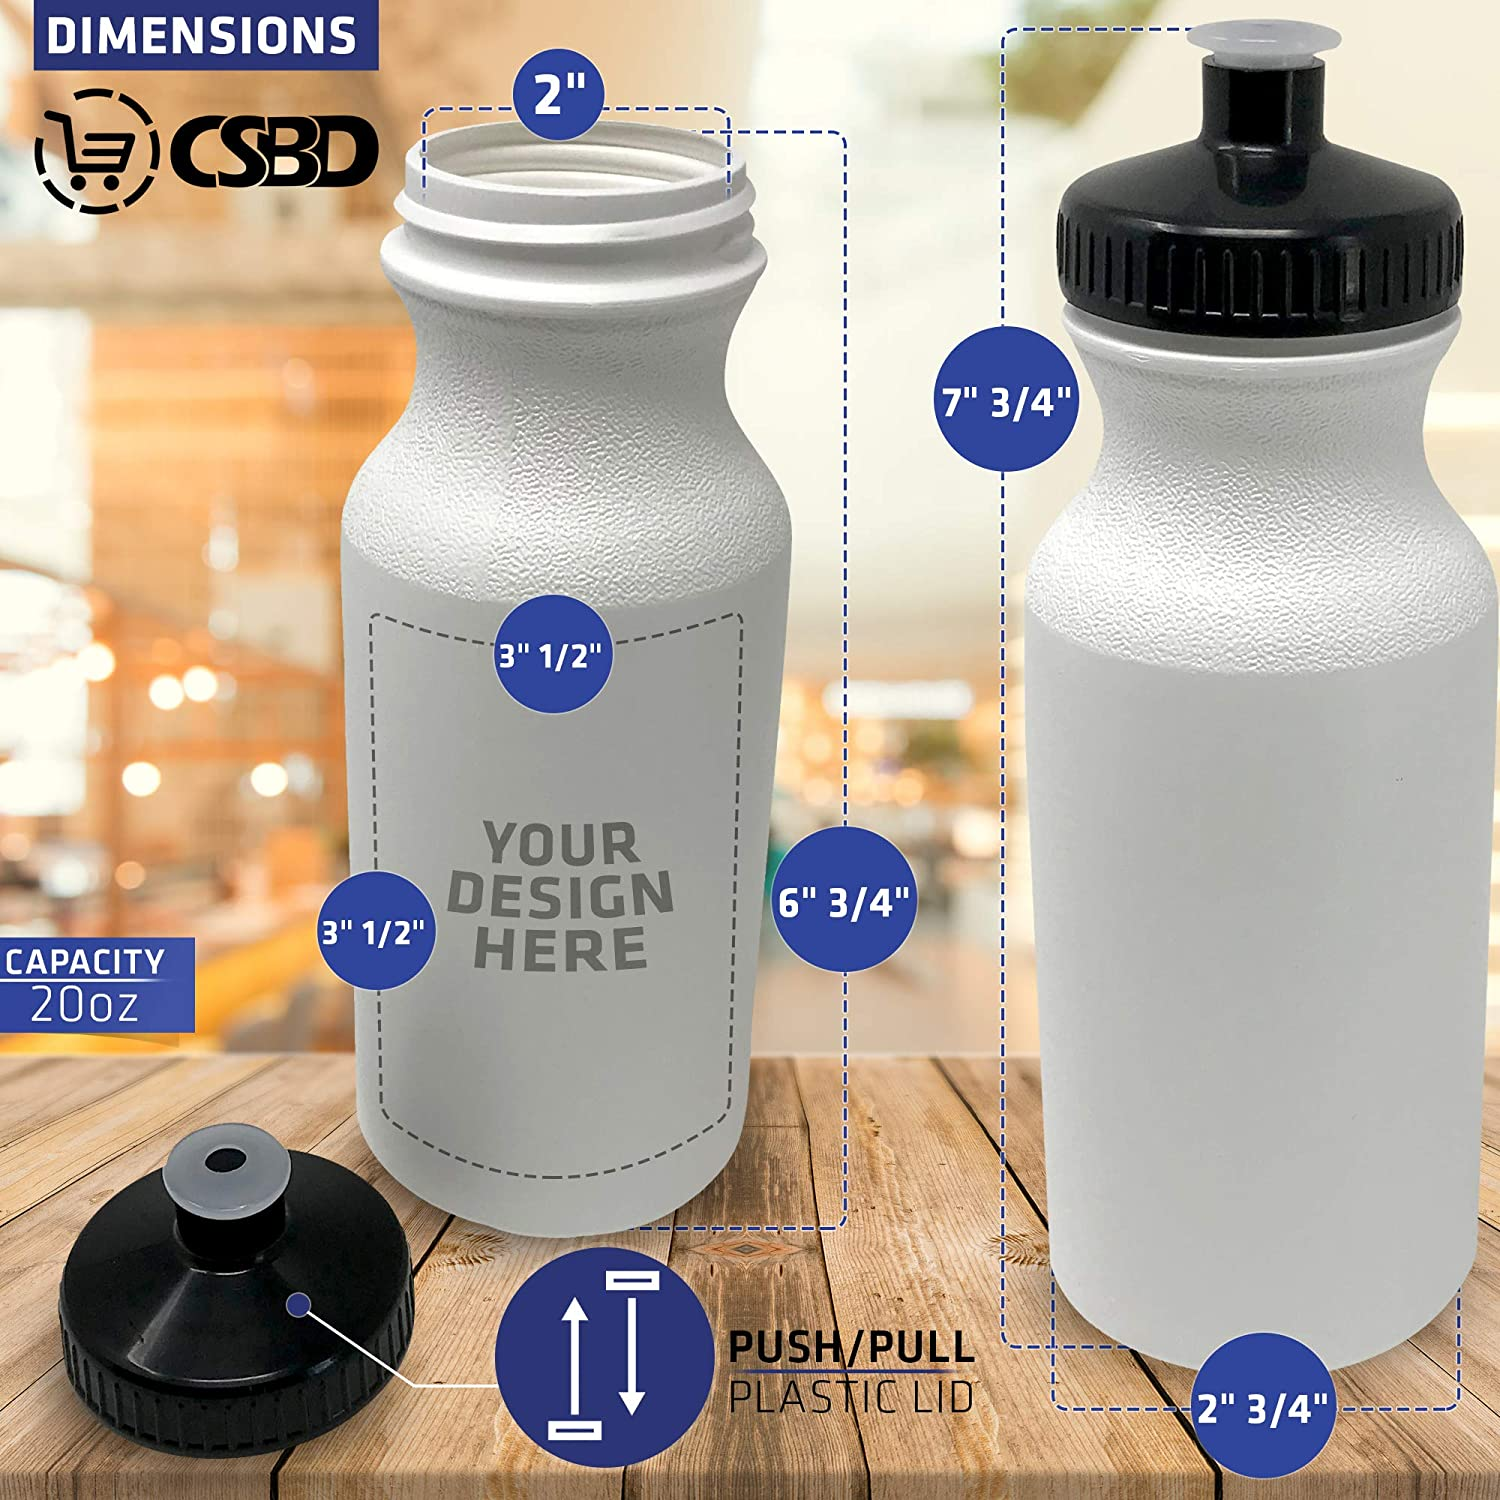 BPA Free Multiple Colors /& Sizes Available Bulk CSBD Sport Water Bottle 4 Pack PET and HDPE Plastic Made in USA